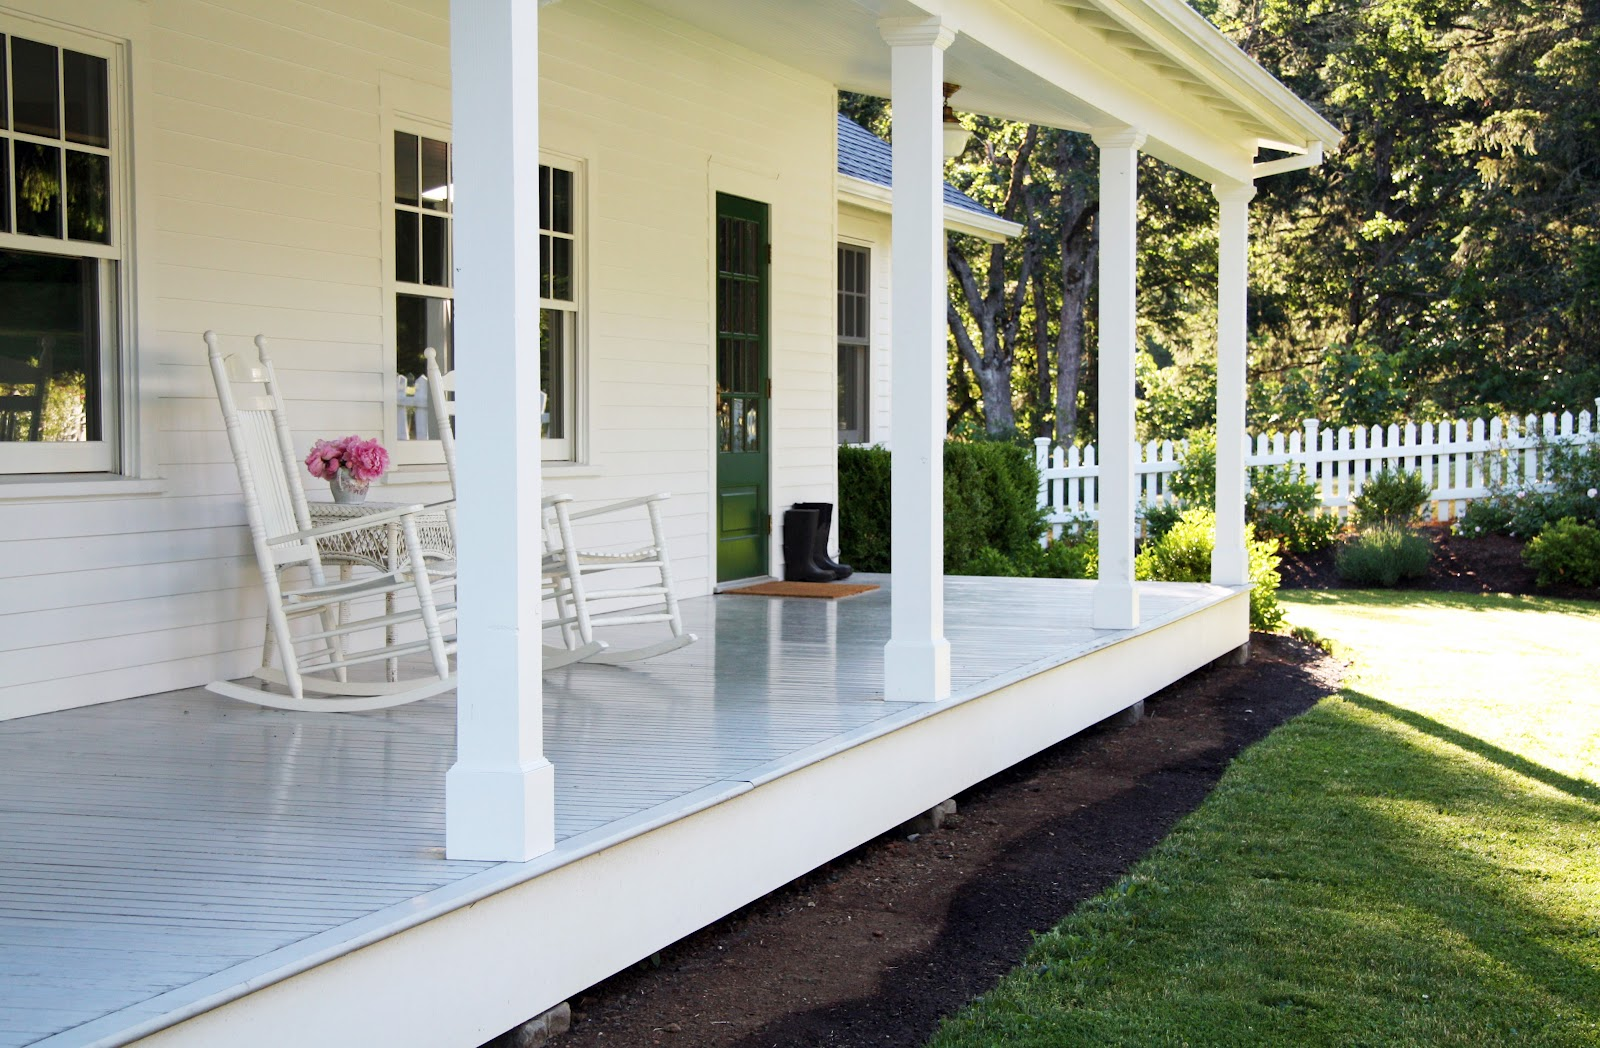 Farmhouse Front Porch Railing Ideas Porch On Pinterest Porches Country Farmhouse And